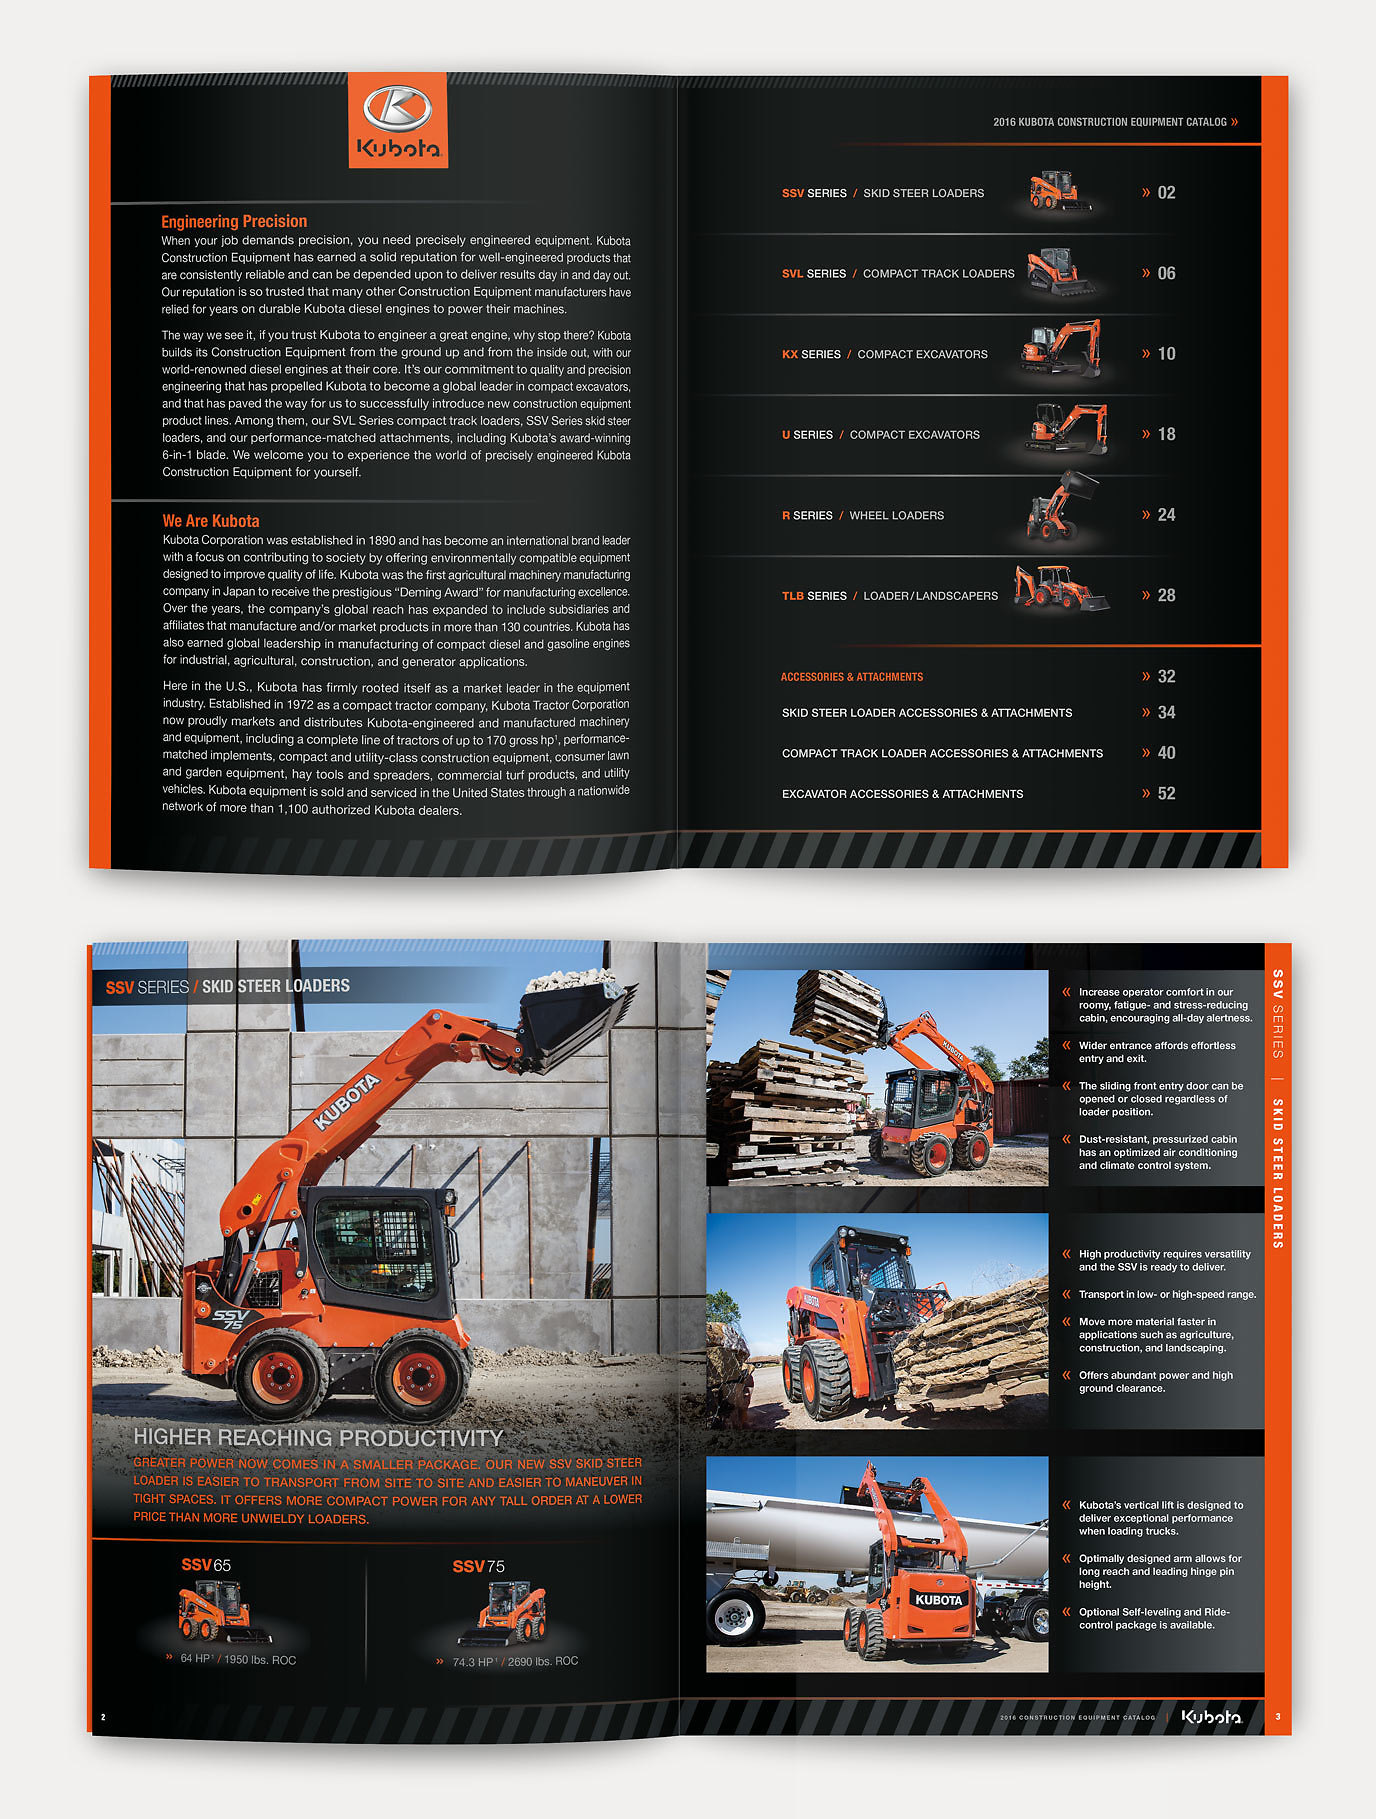 Kubota contruction equiplment catalog spreads